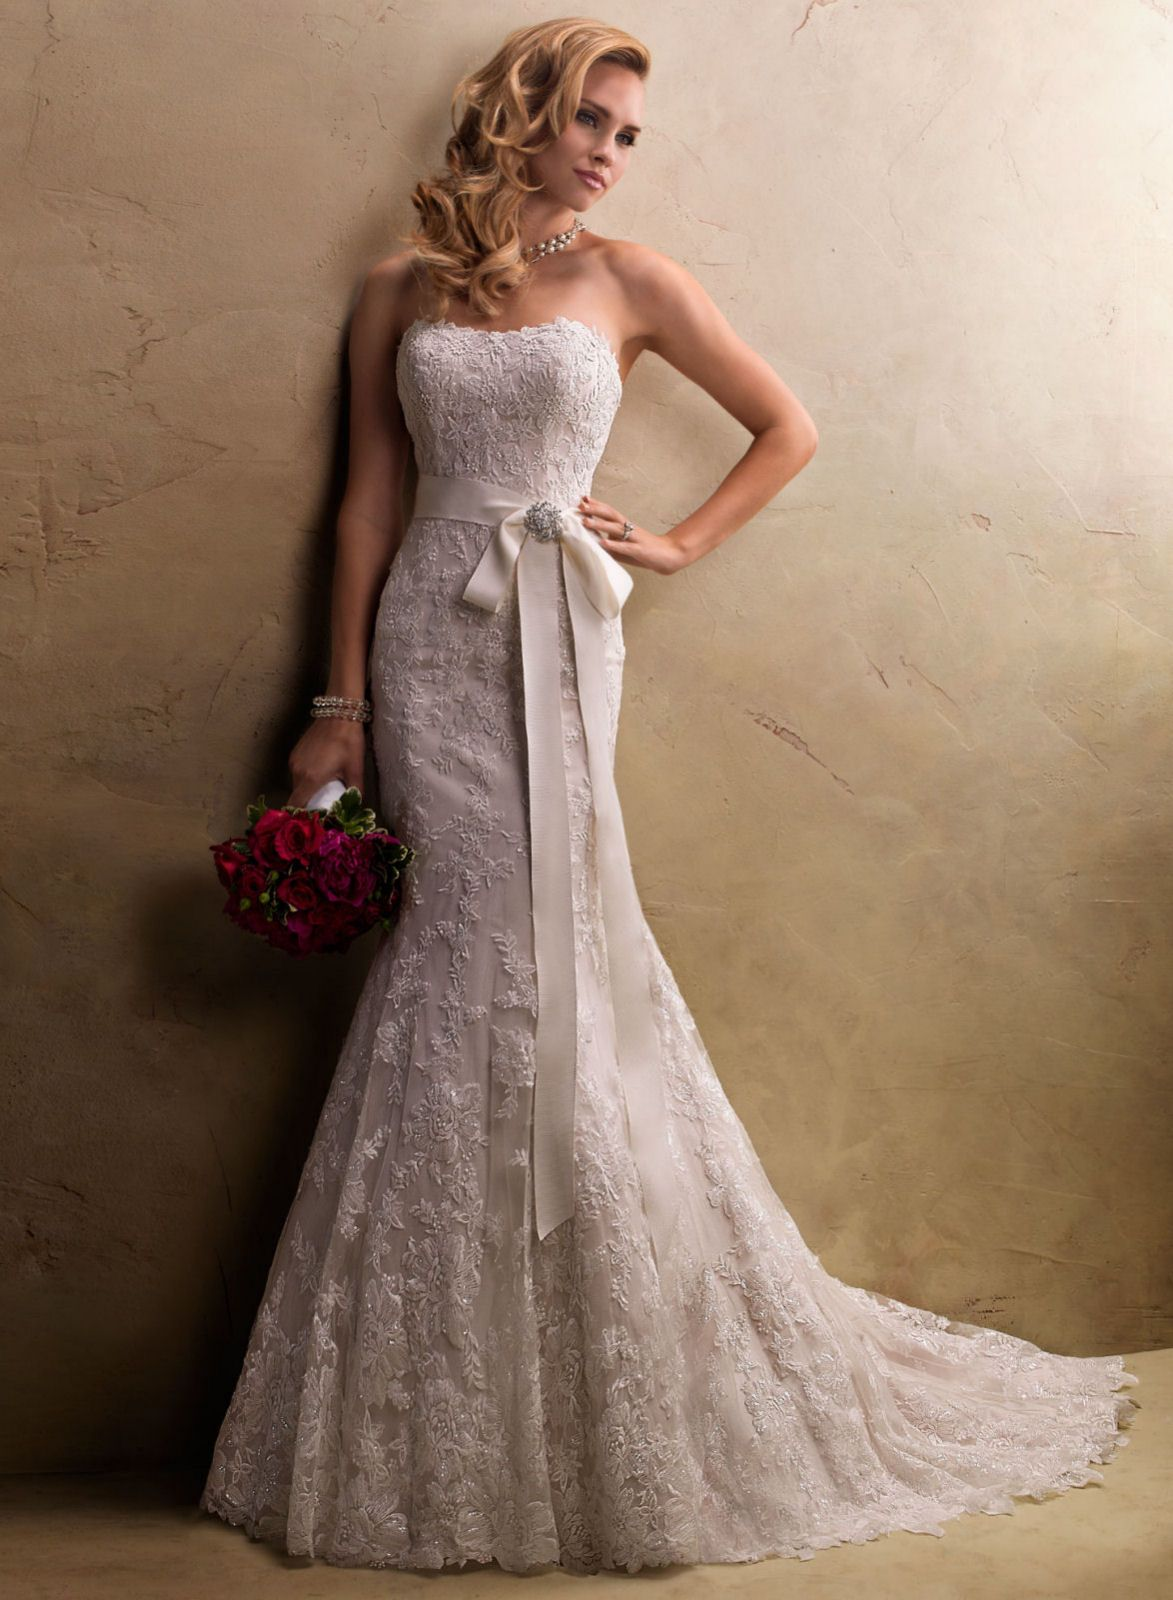 Over 40 Wedding Dresses with a belt | Judith from Maggie Sottero